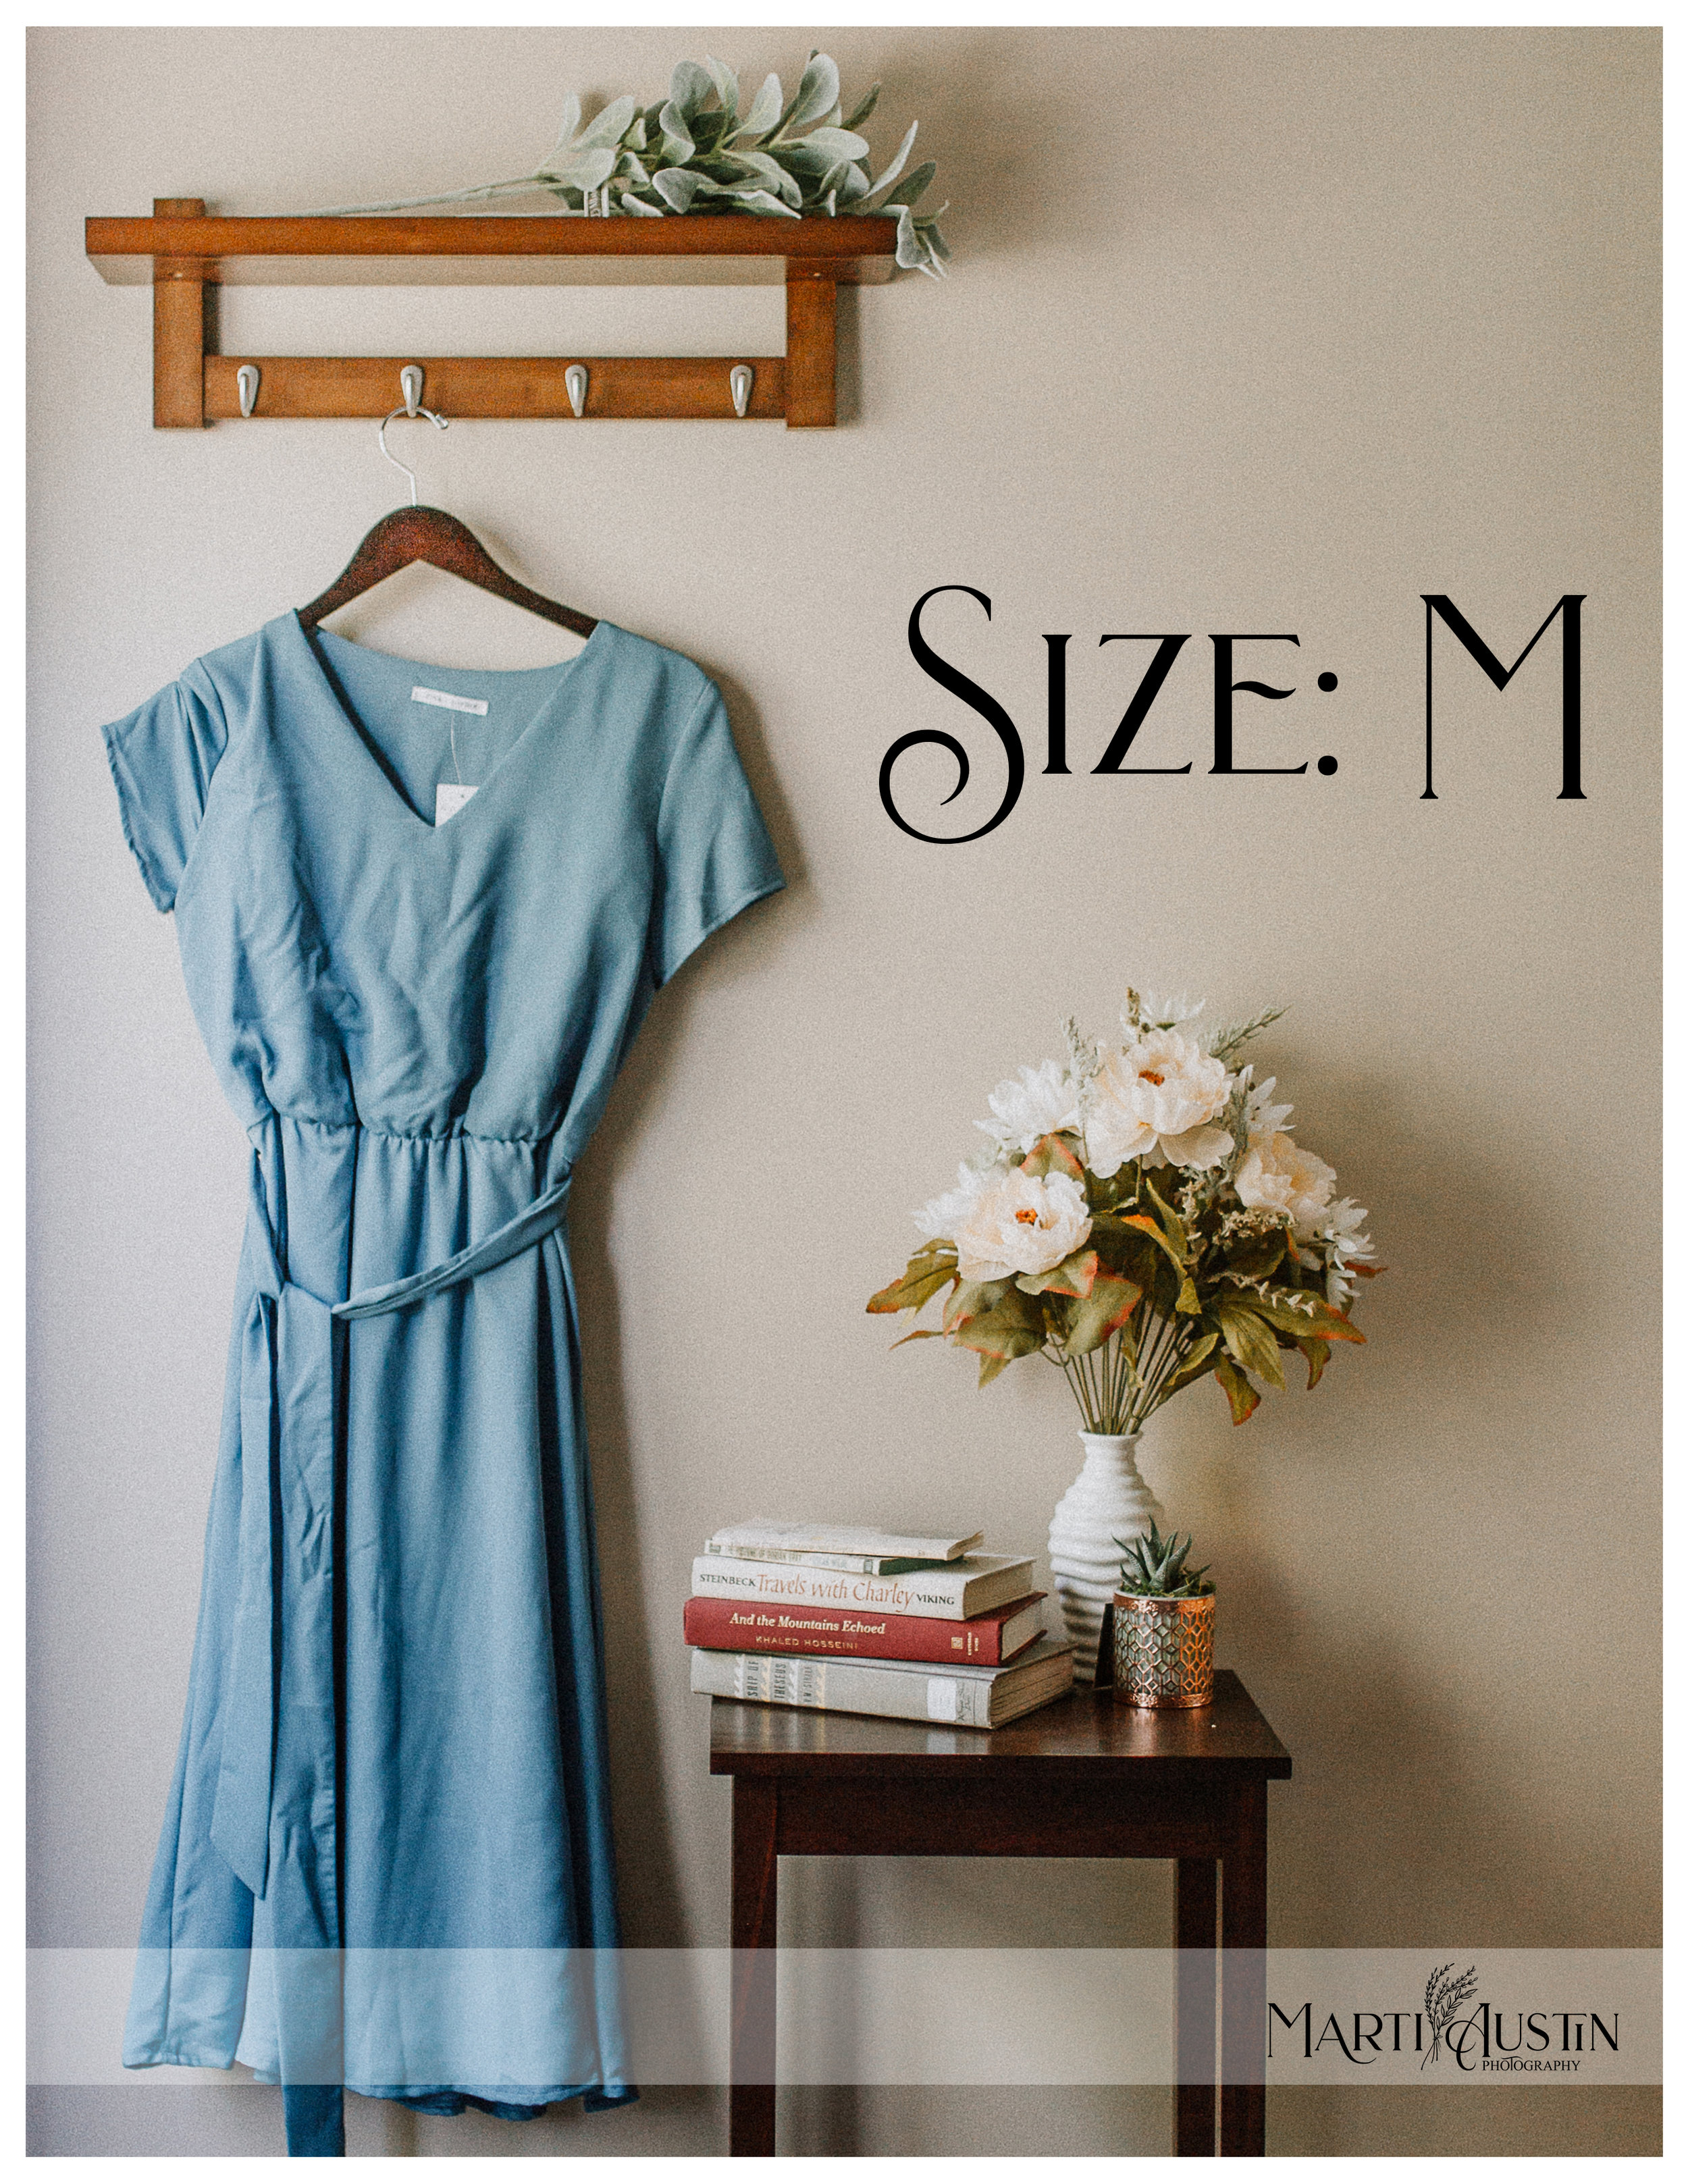 blue midi-dress hanging on the wall next to a table with books and flowers